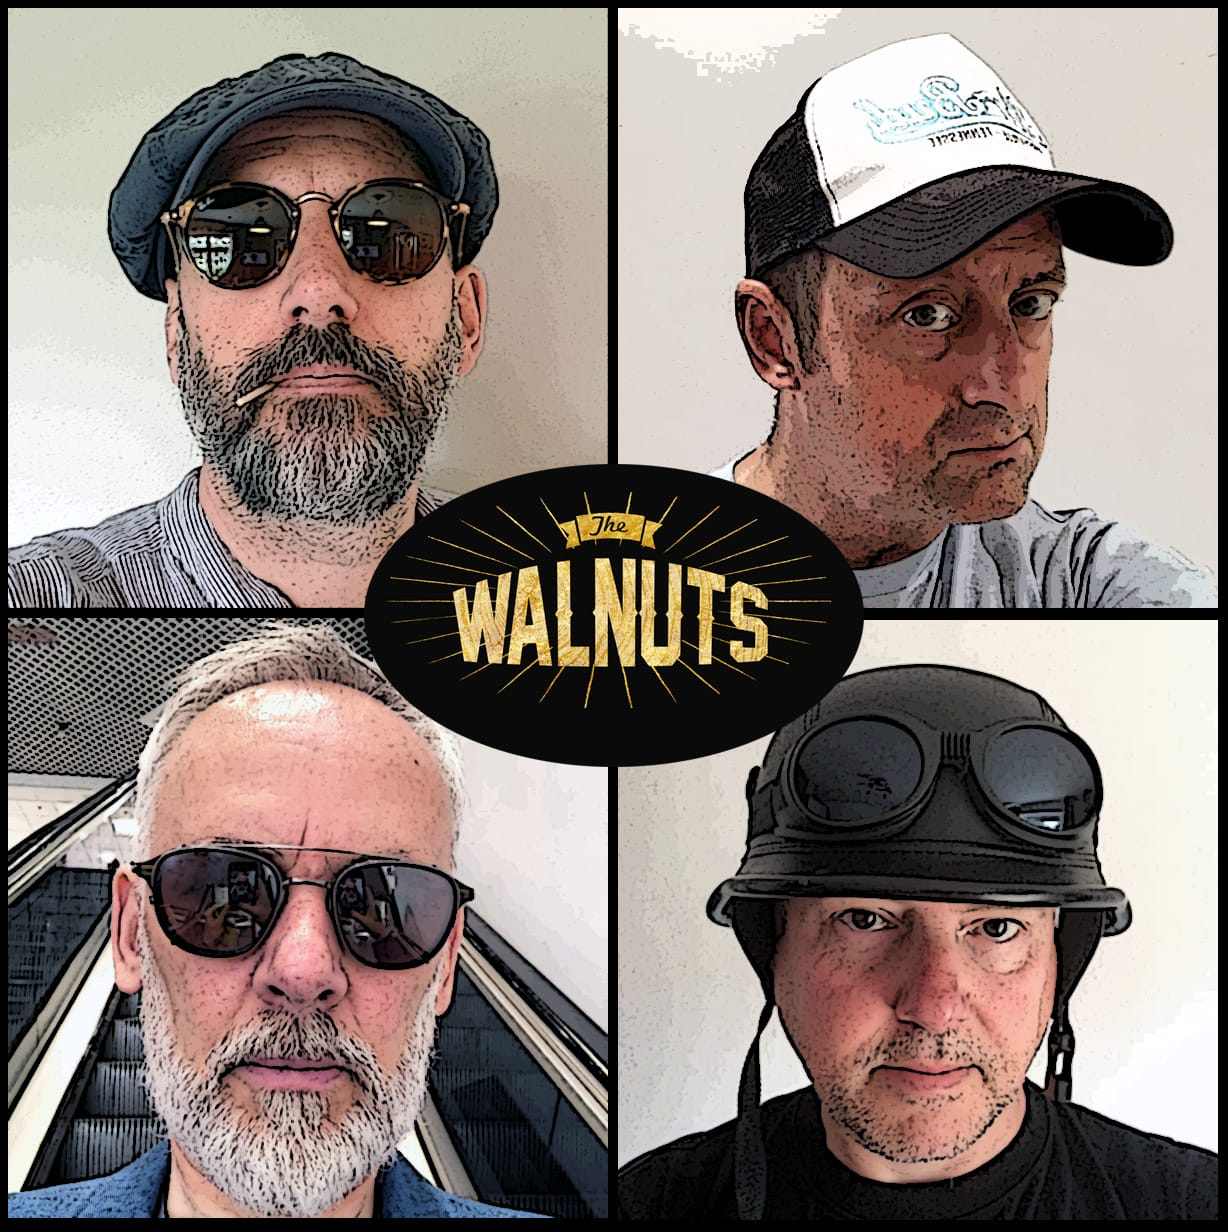 The Walnuts